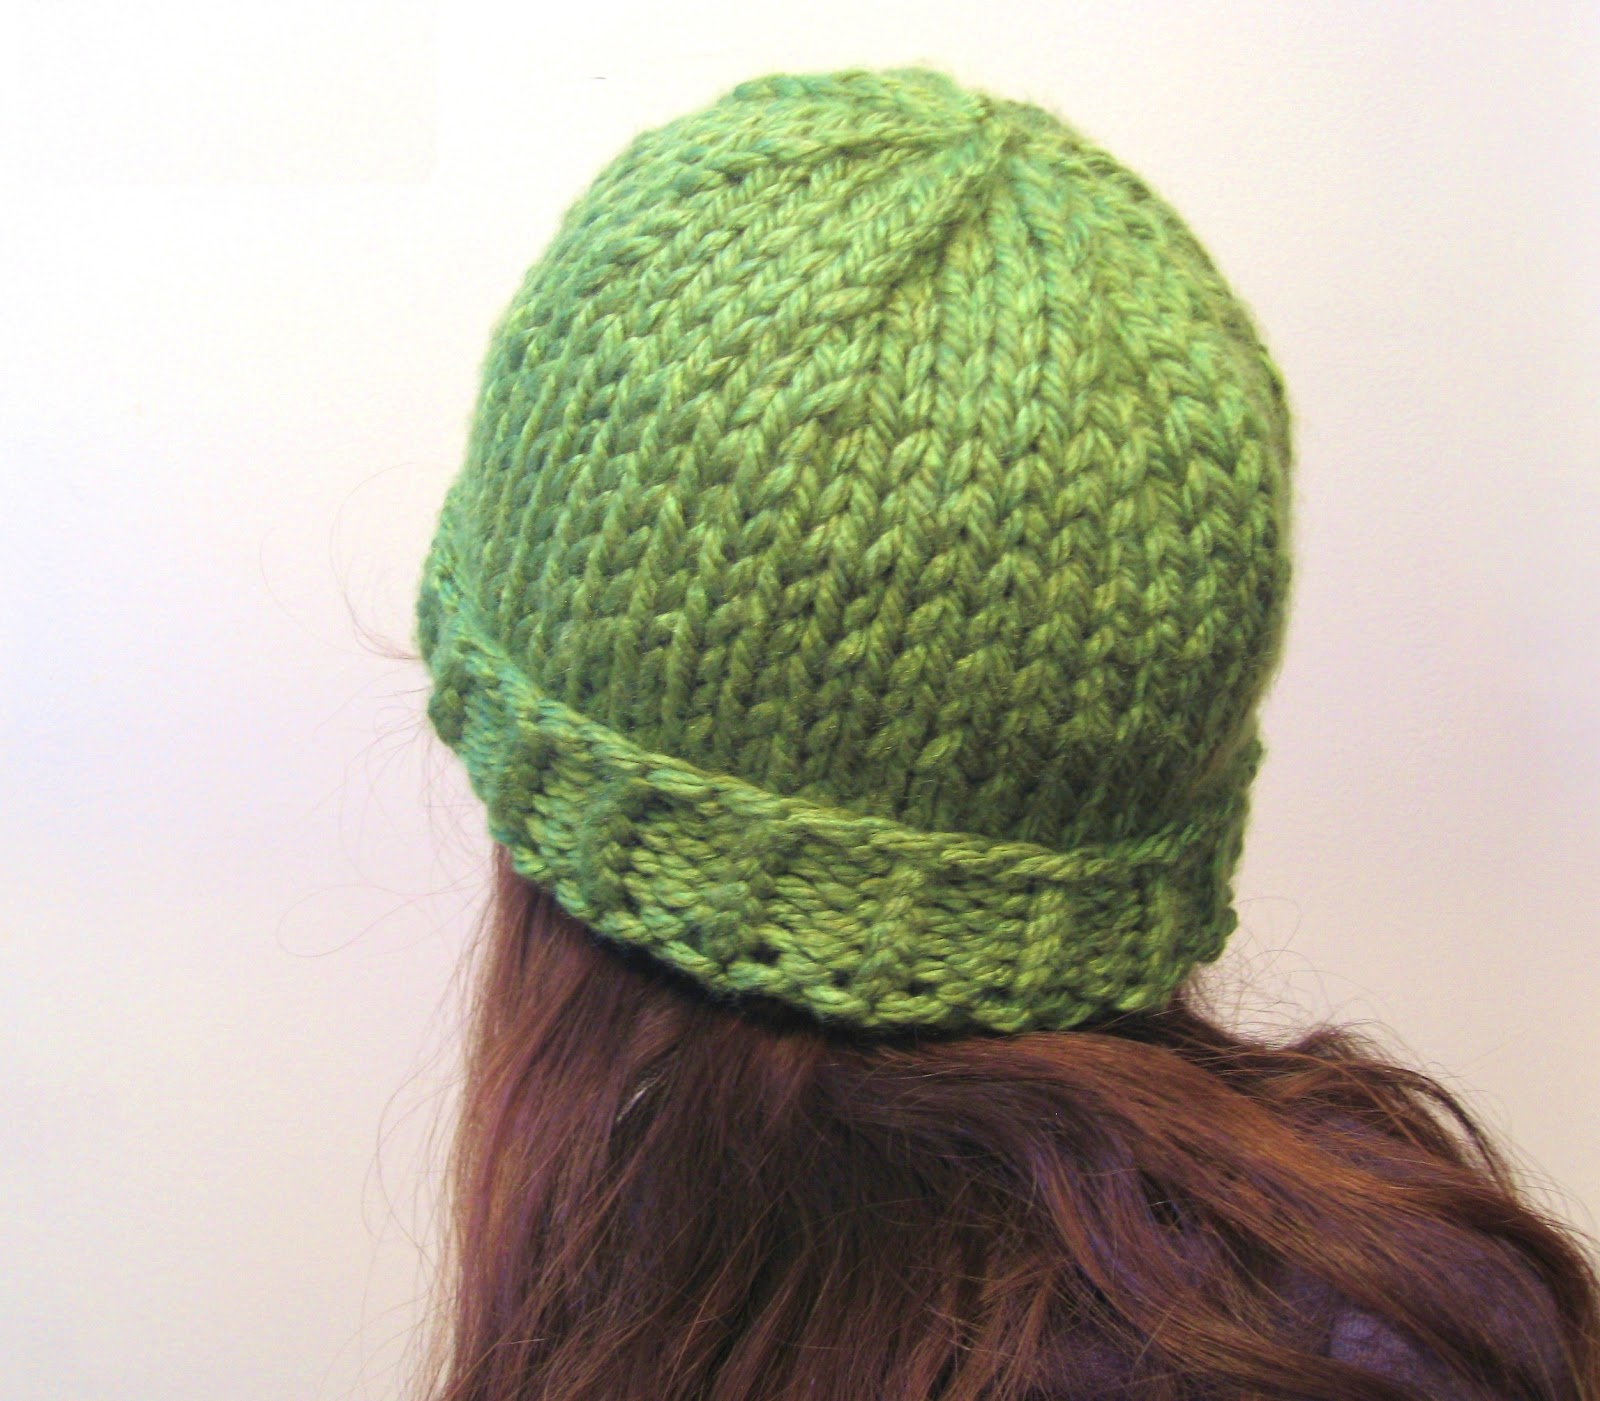 Knitting Pattern For Beanie : megan E sass handknits: Free Knitting Pattern: Easy Chunky ...